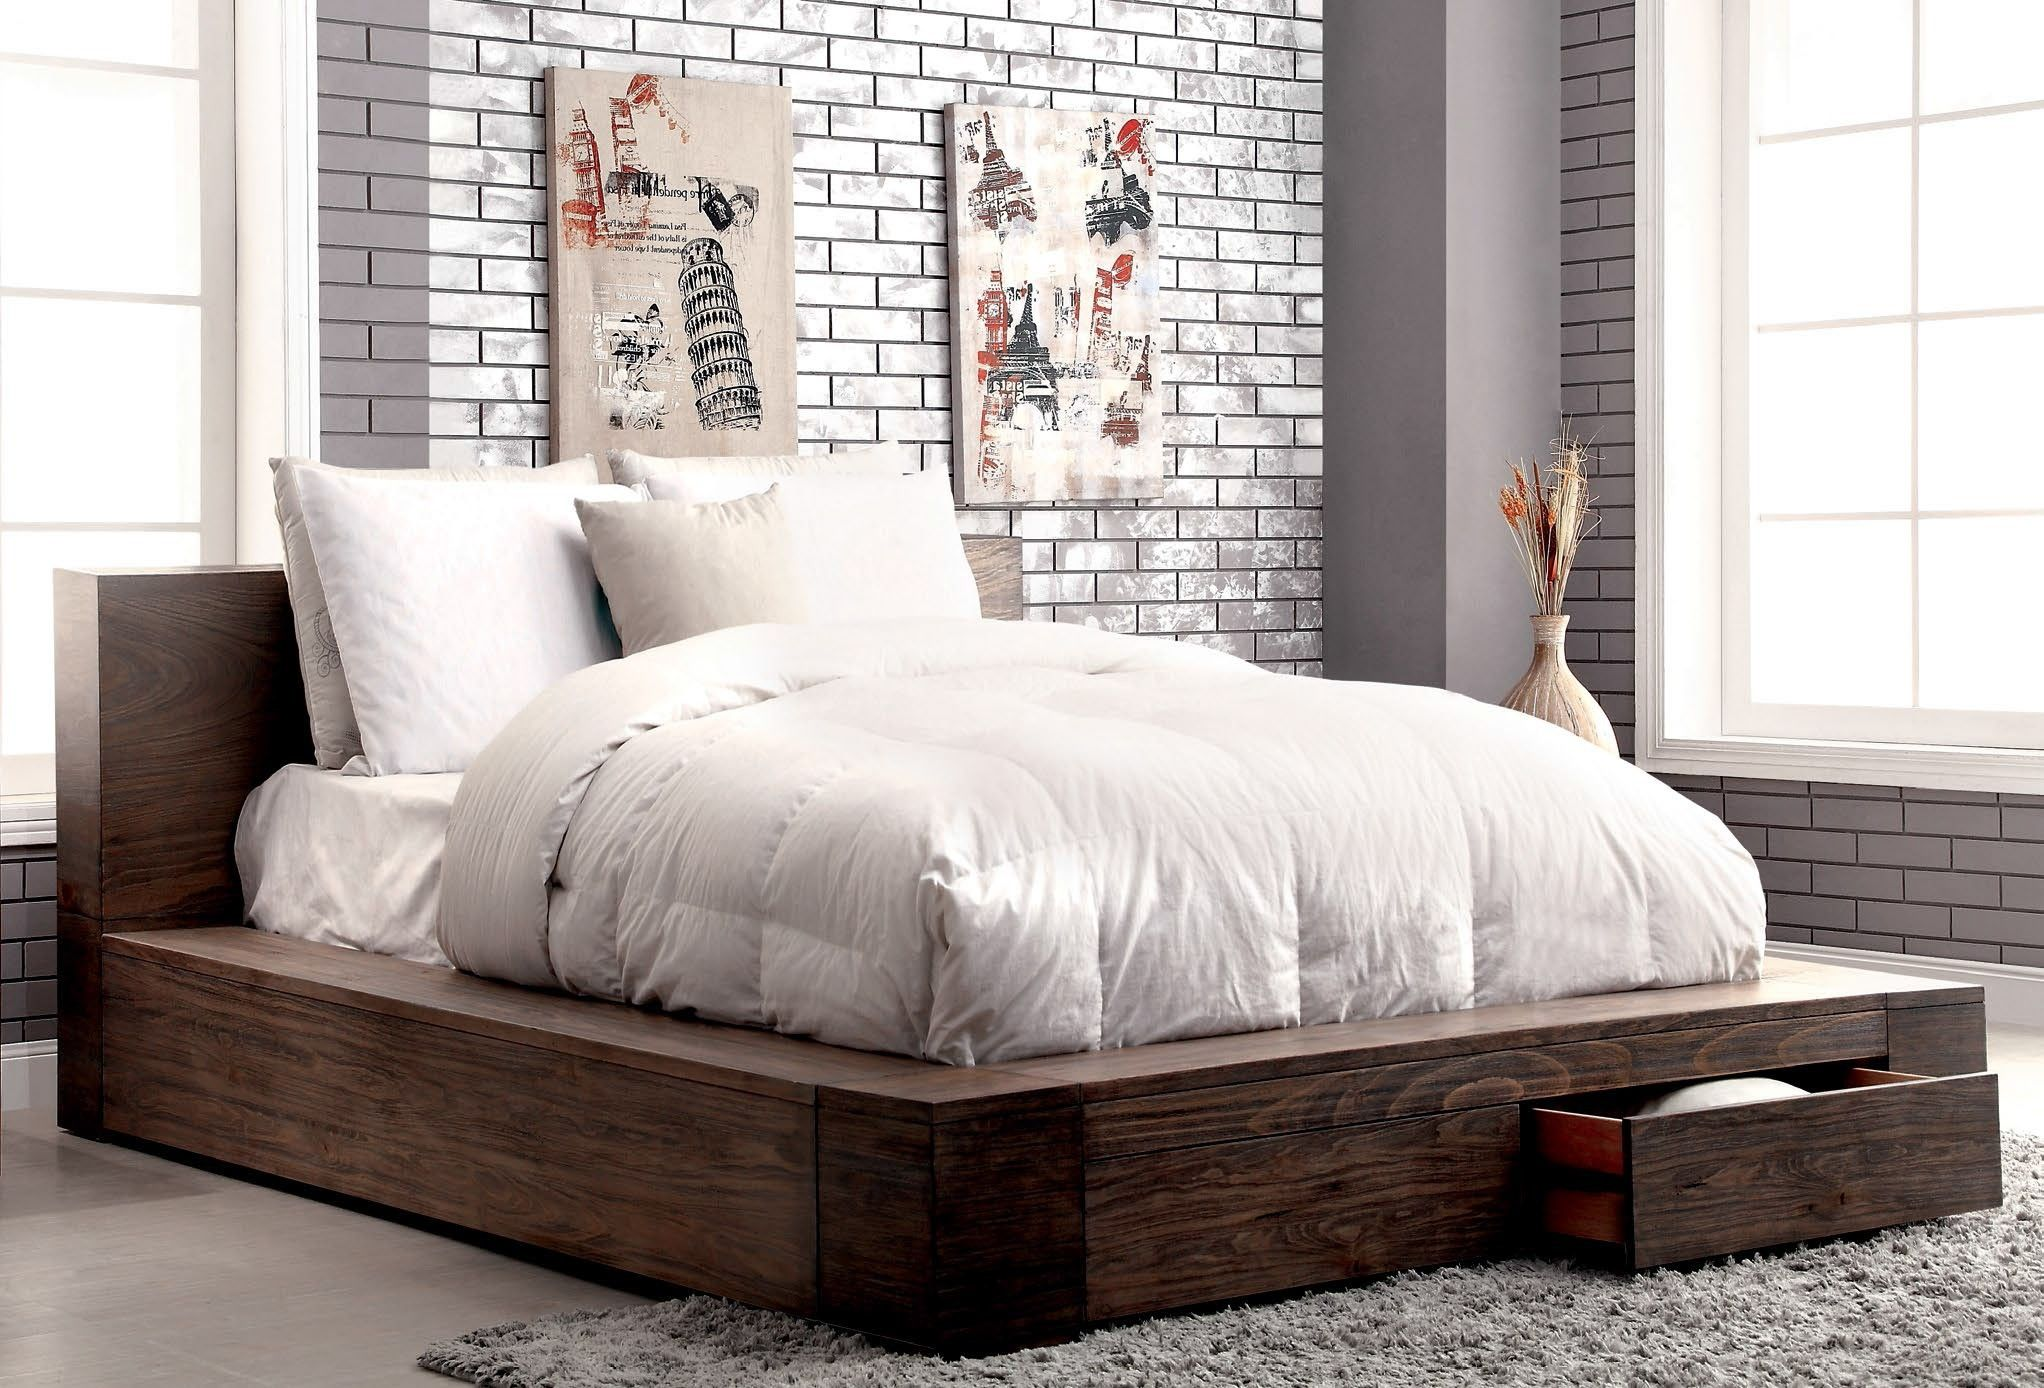 JANEIRO NATURAL WOOD GRAIN PATTERN QUEEN BED with Storage